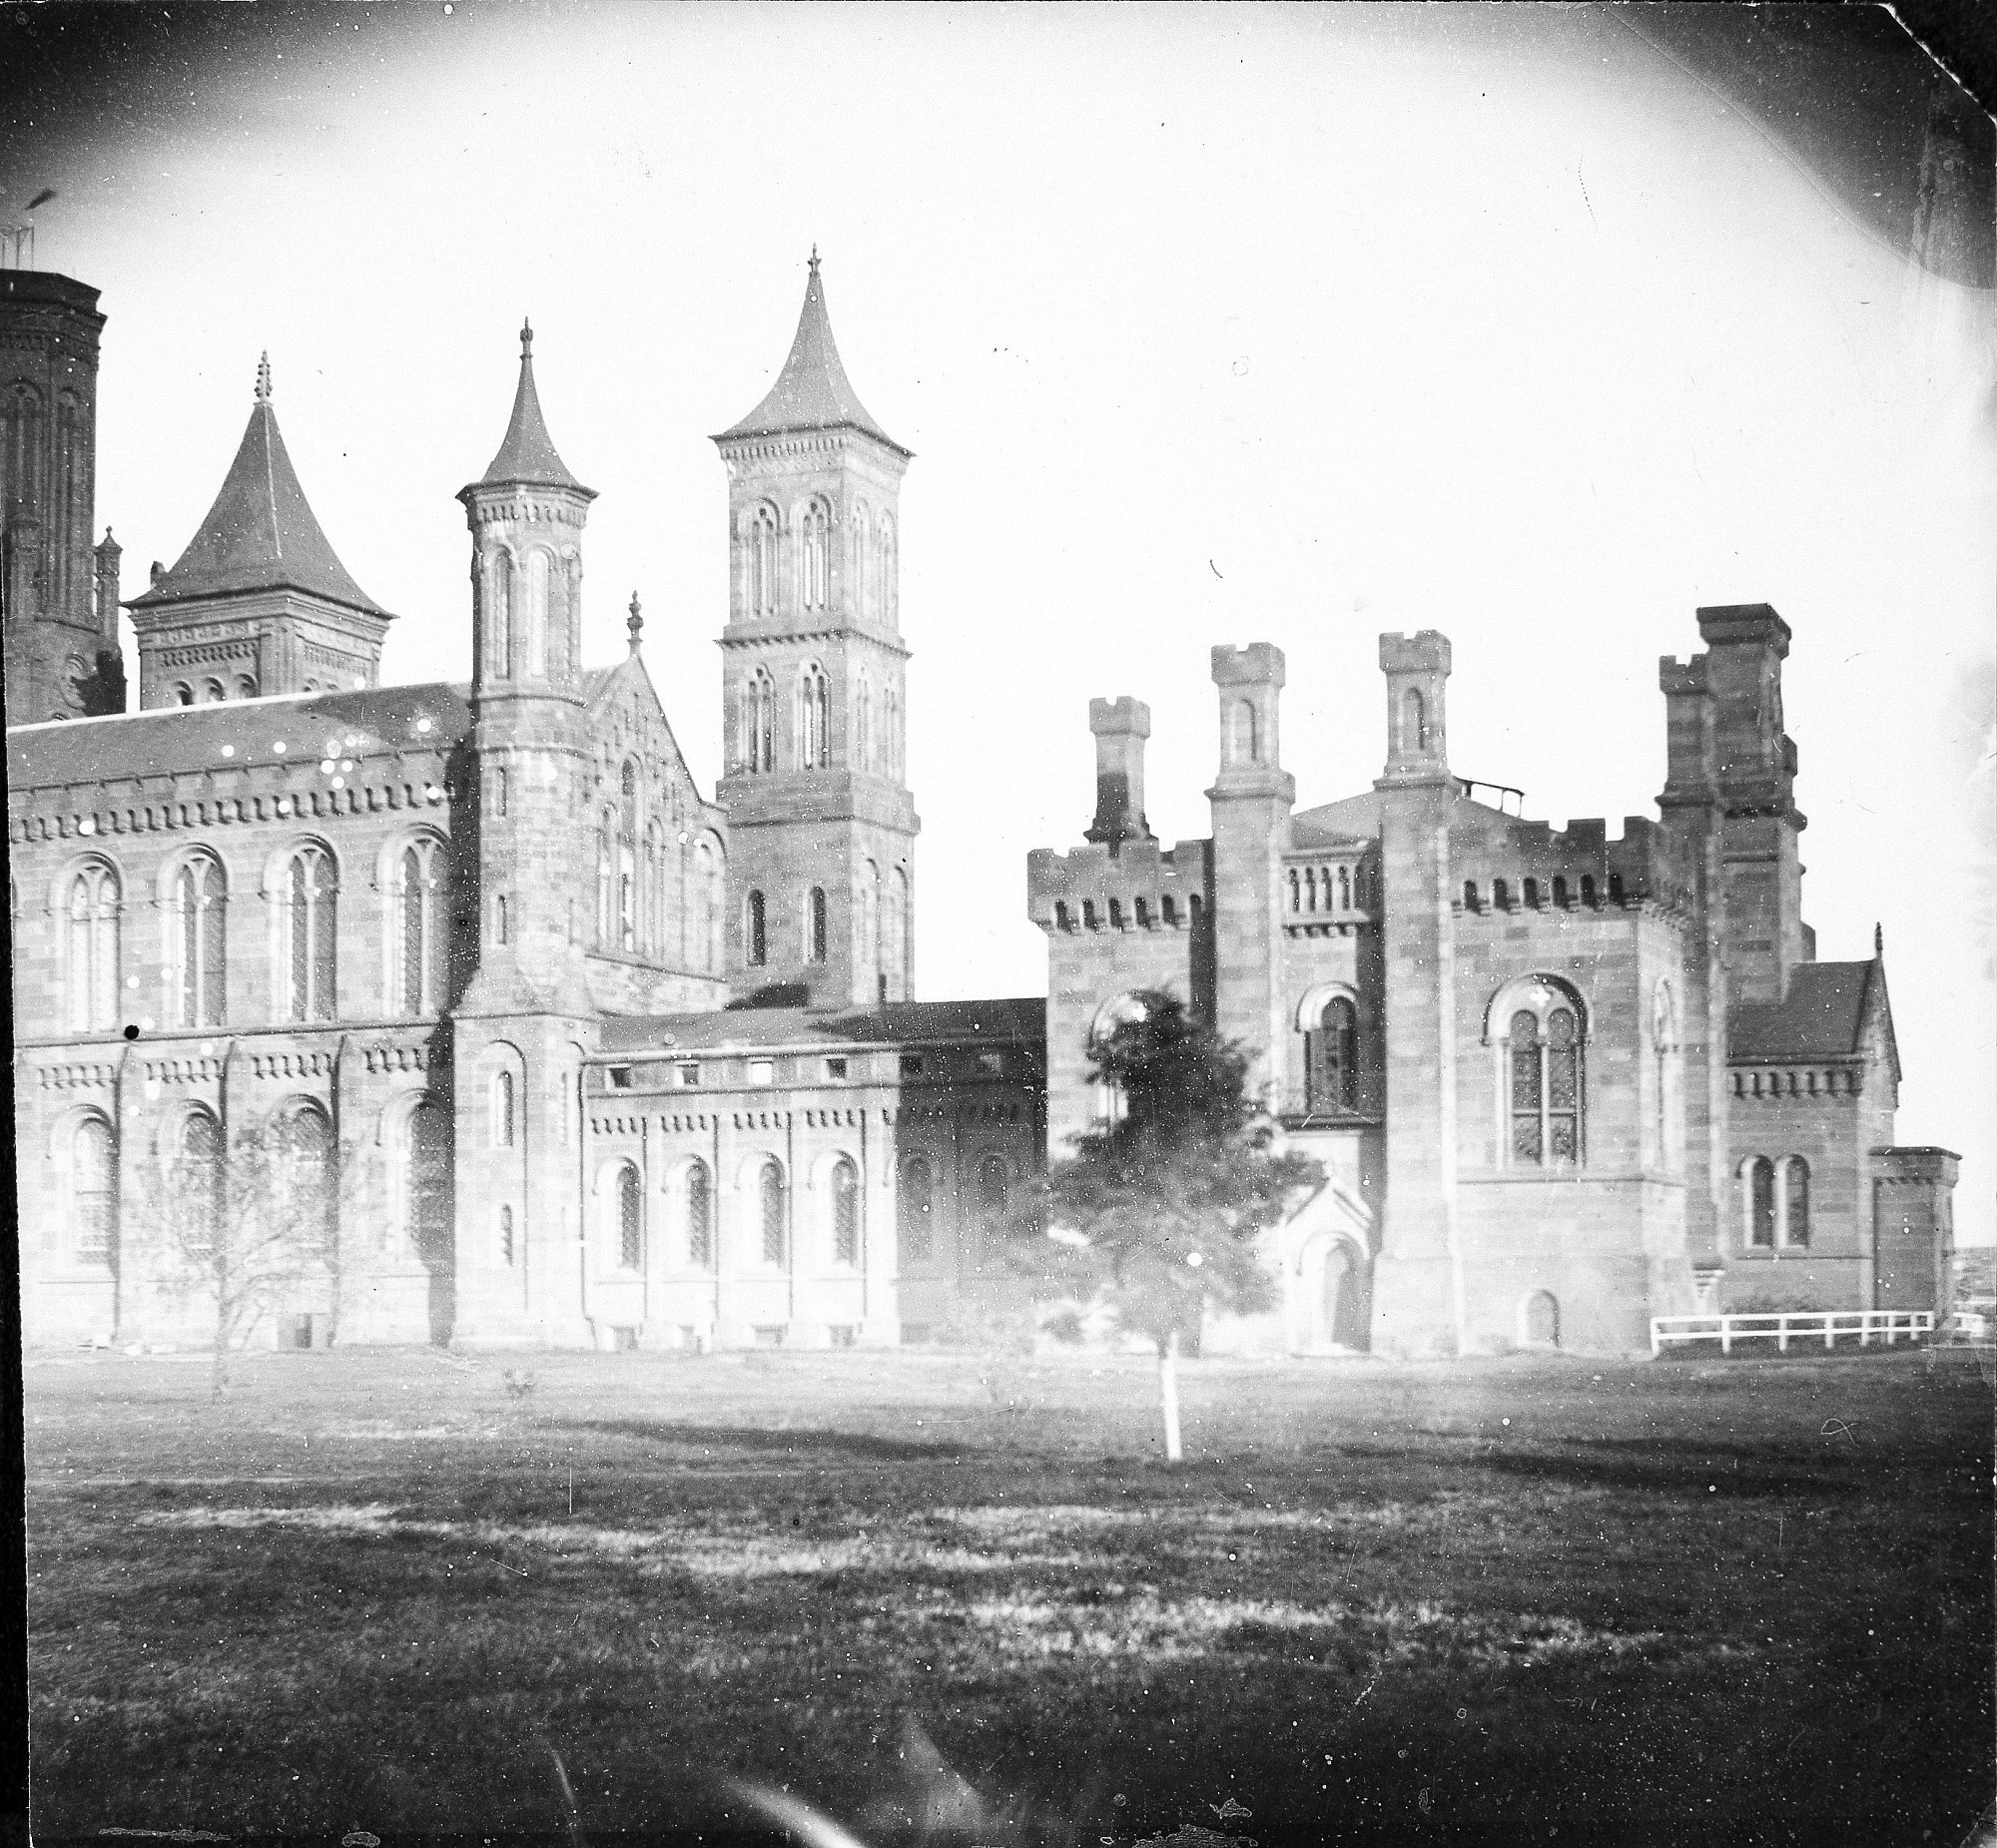 B&W image of the East Wing of Smithsonian Castle viewed from the South Yard.